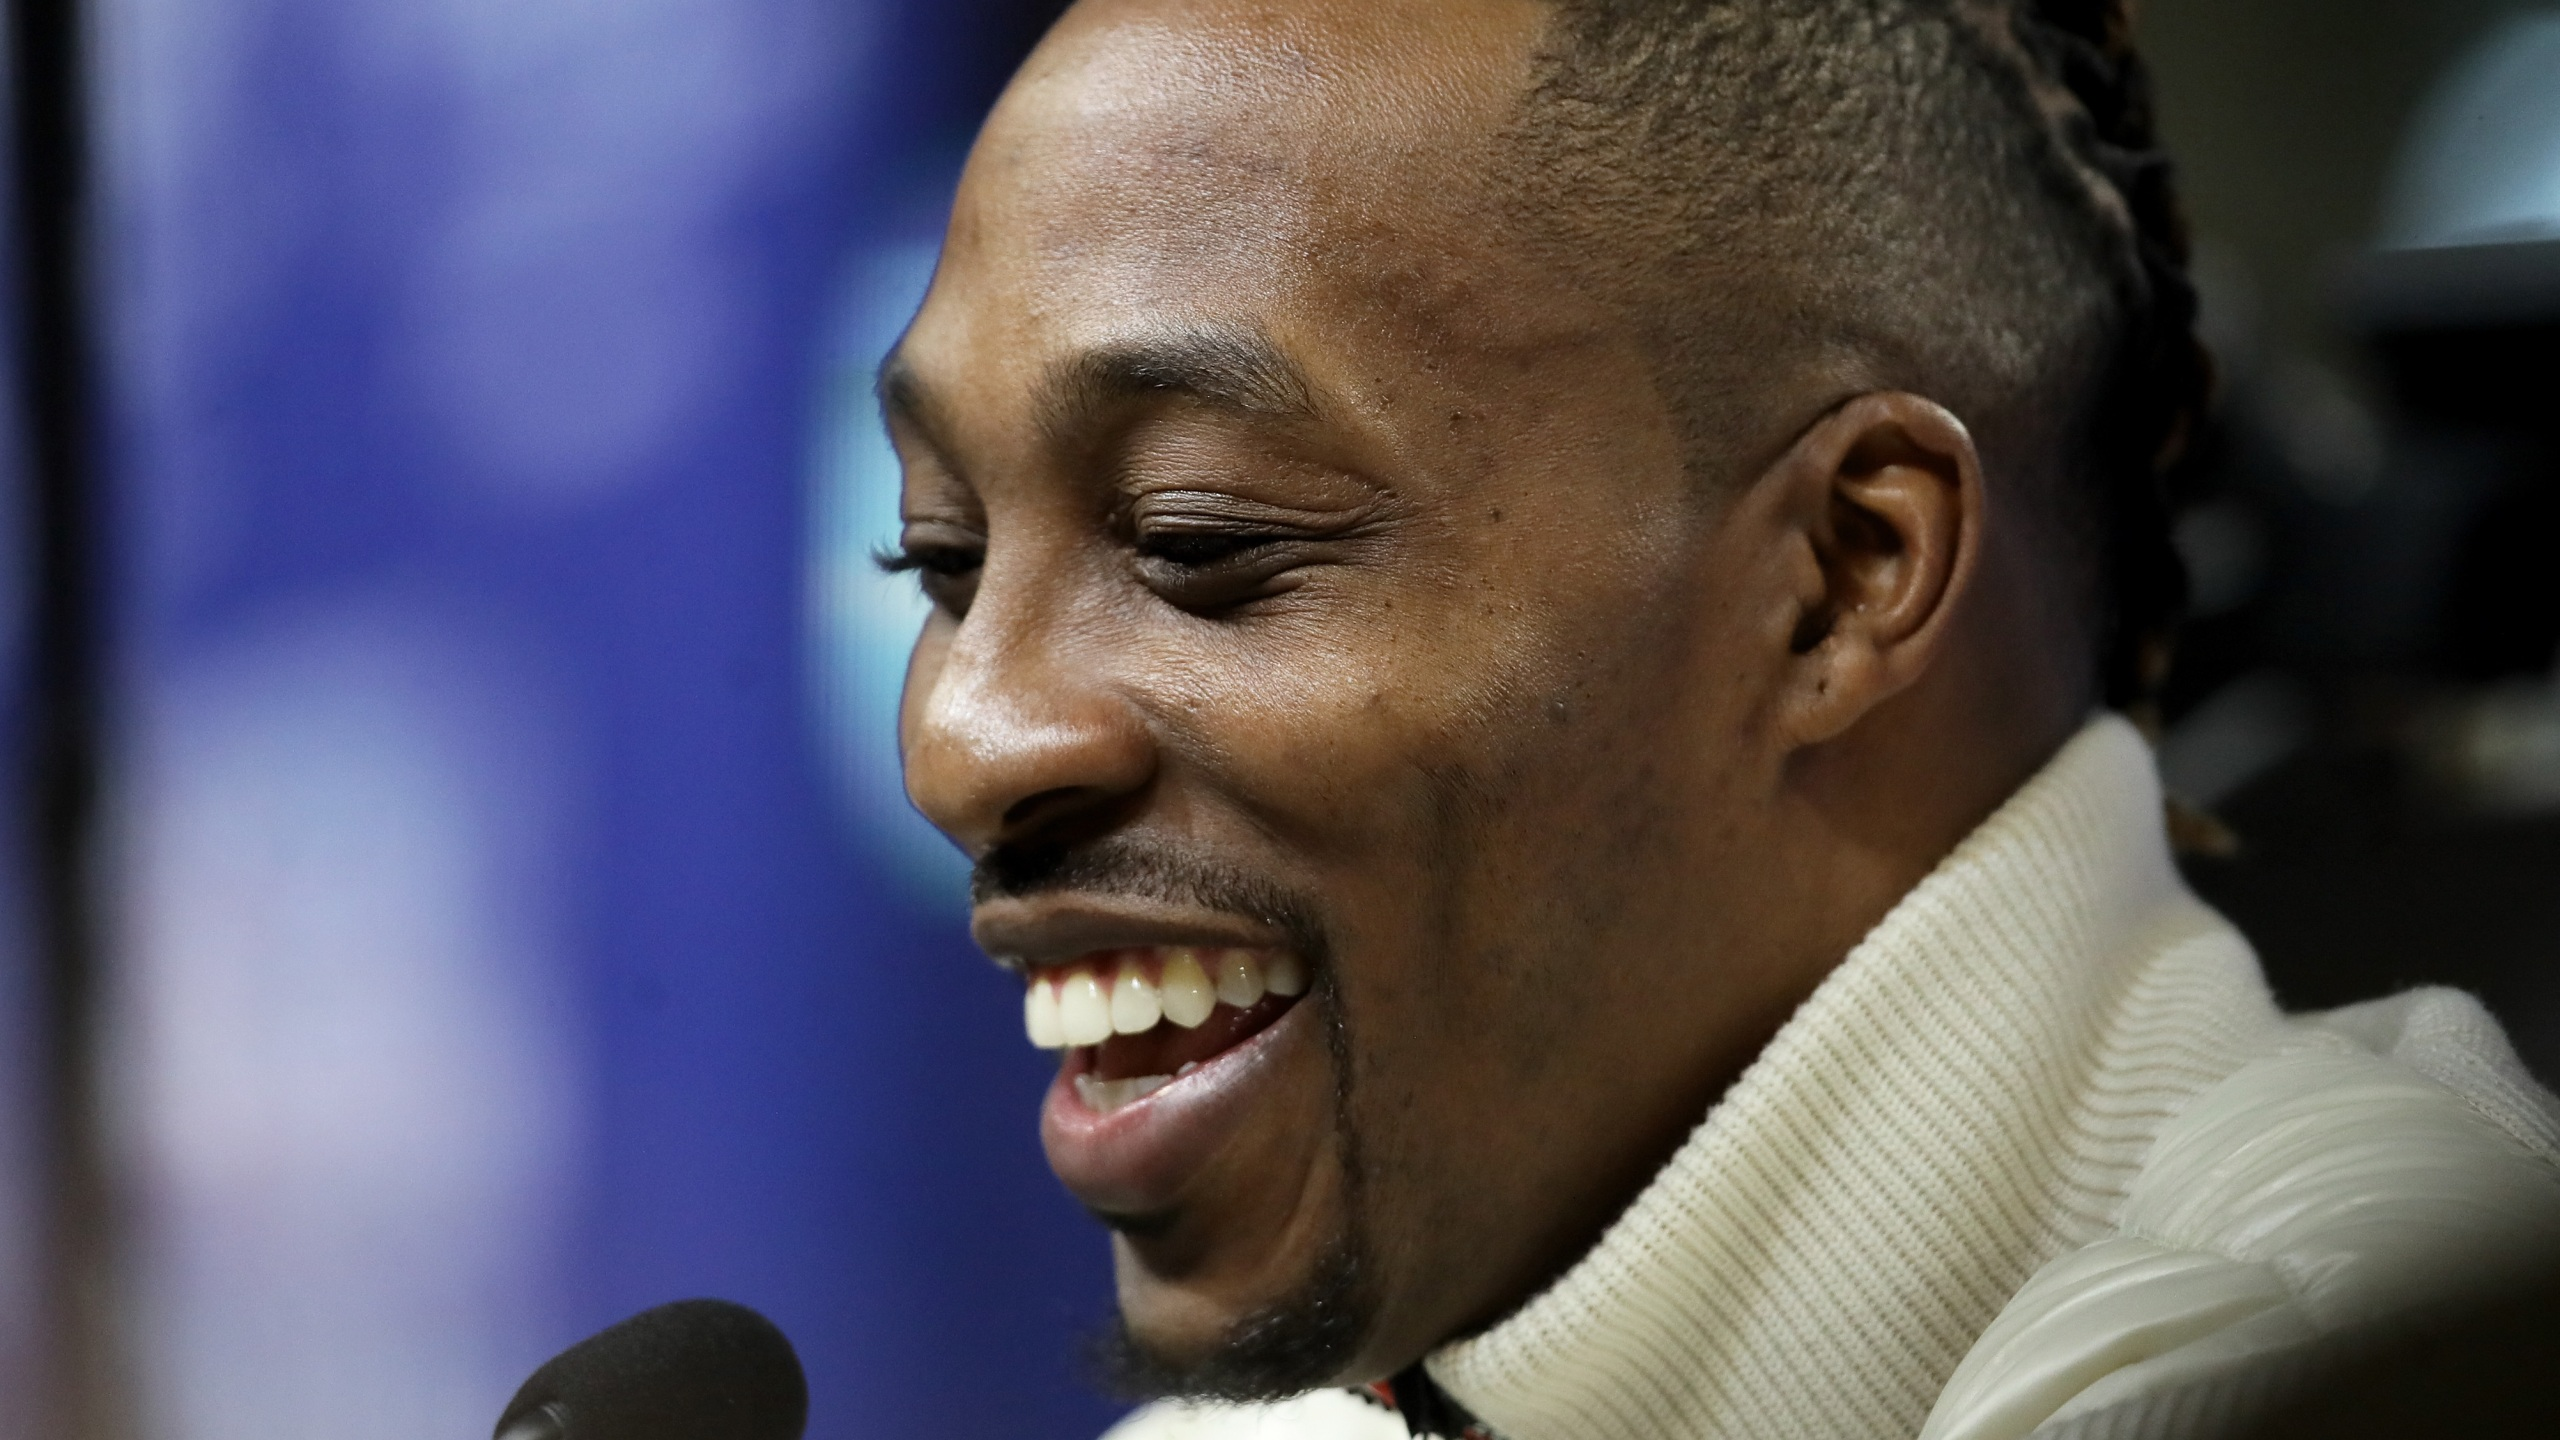 Dwight Howard of the Los Angeles Lakers speaks to the media during 2020 NBA All-Star Practice Media Day at Wintrust Arena on Feb. 15, 2020 in Chicago, Illinois. (Jonathan Daniel/Getty Images)